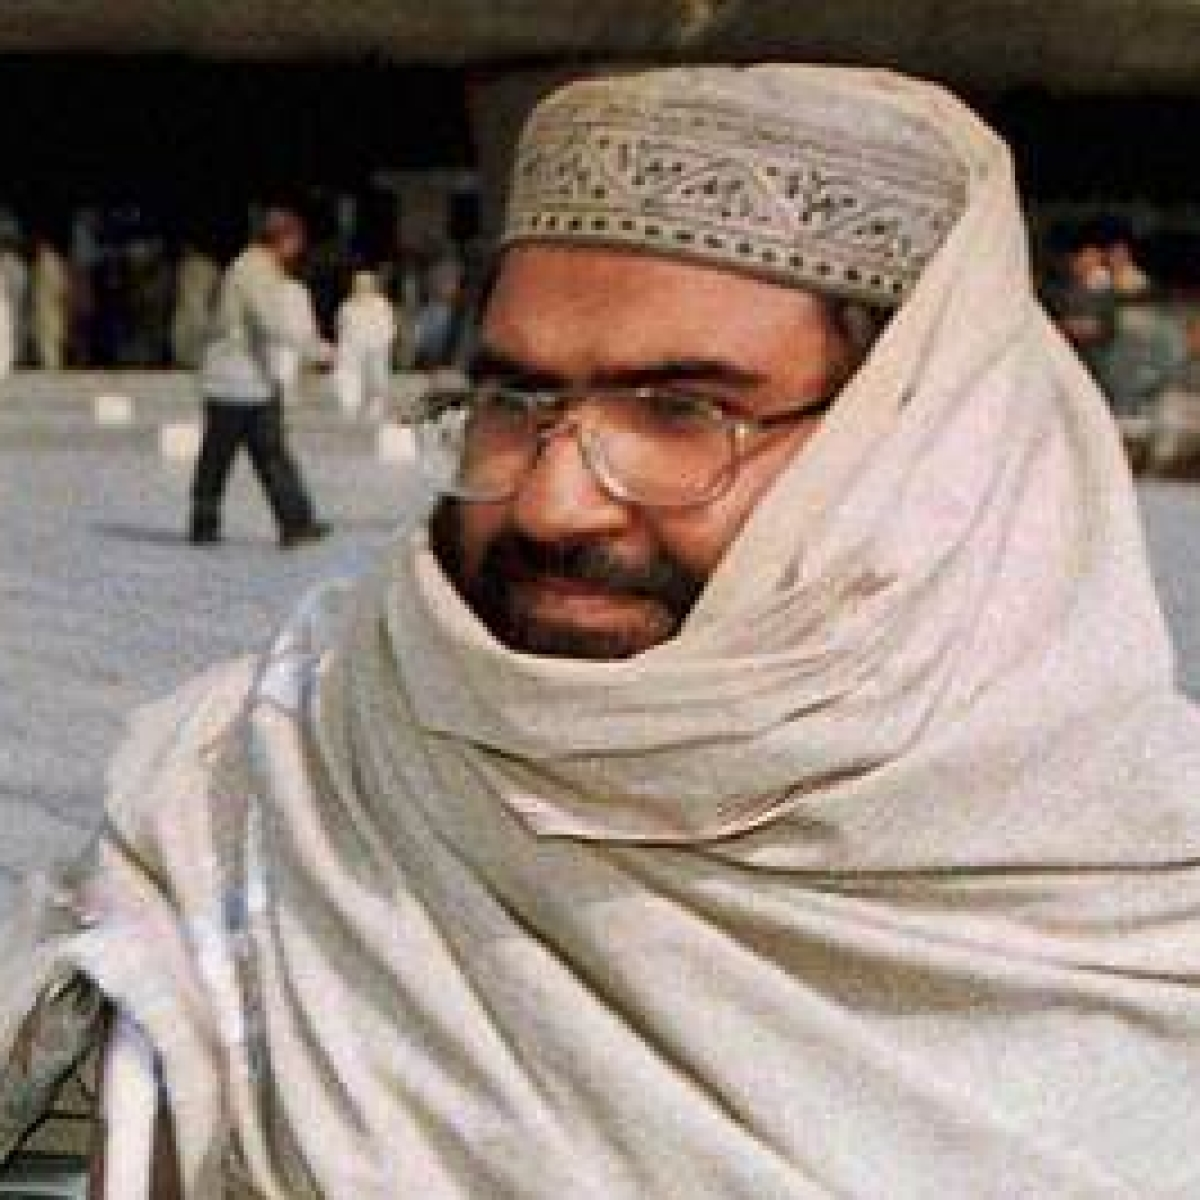 Jaish-e-Mohammed changes name to escape international pressure: Report